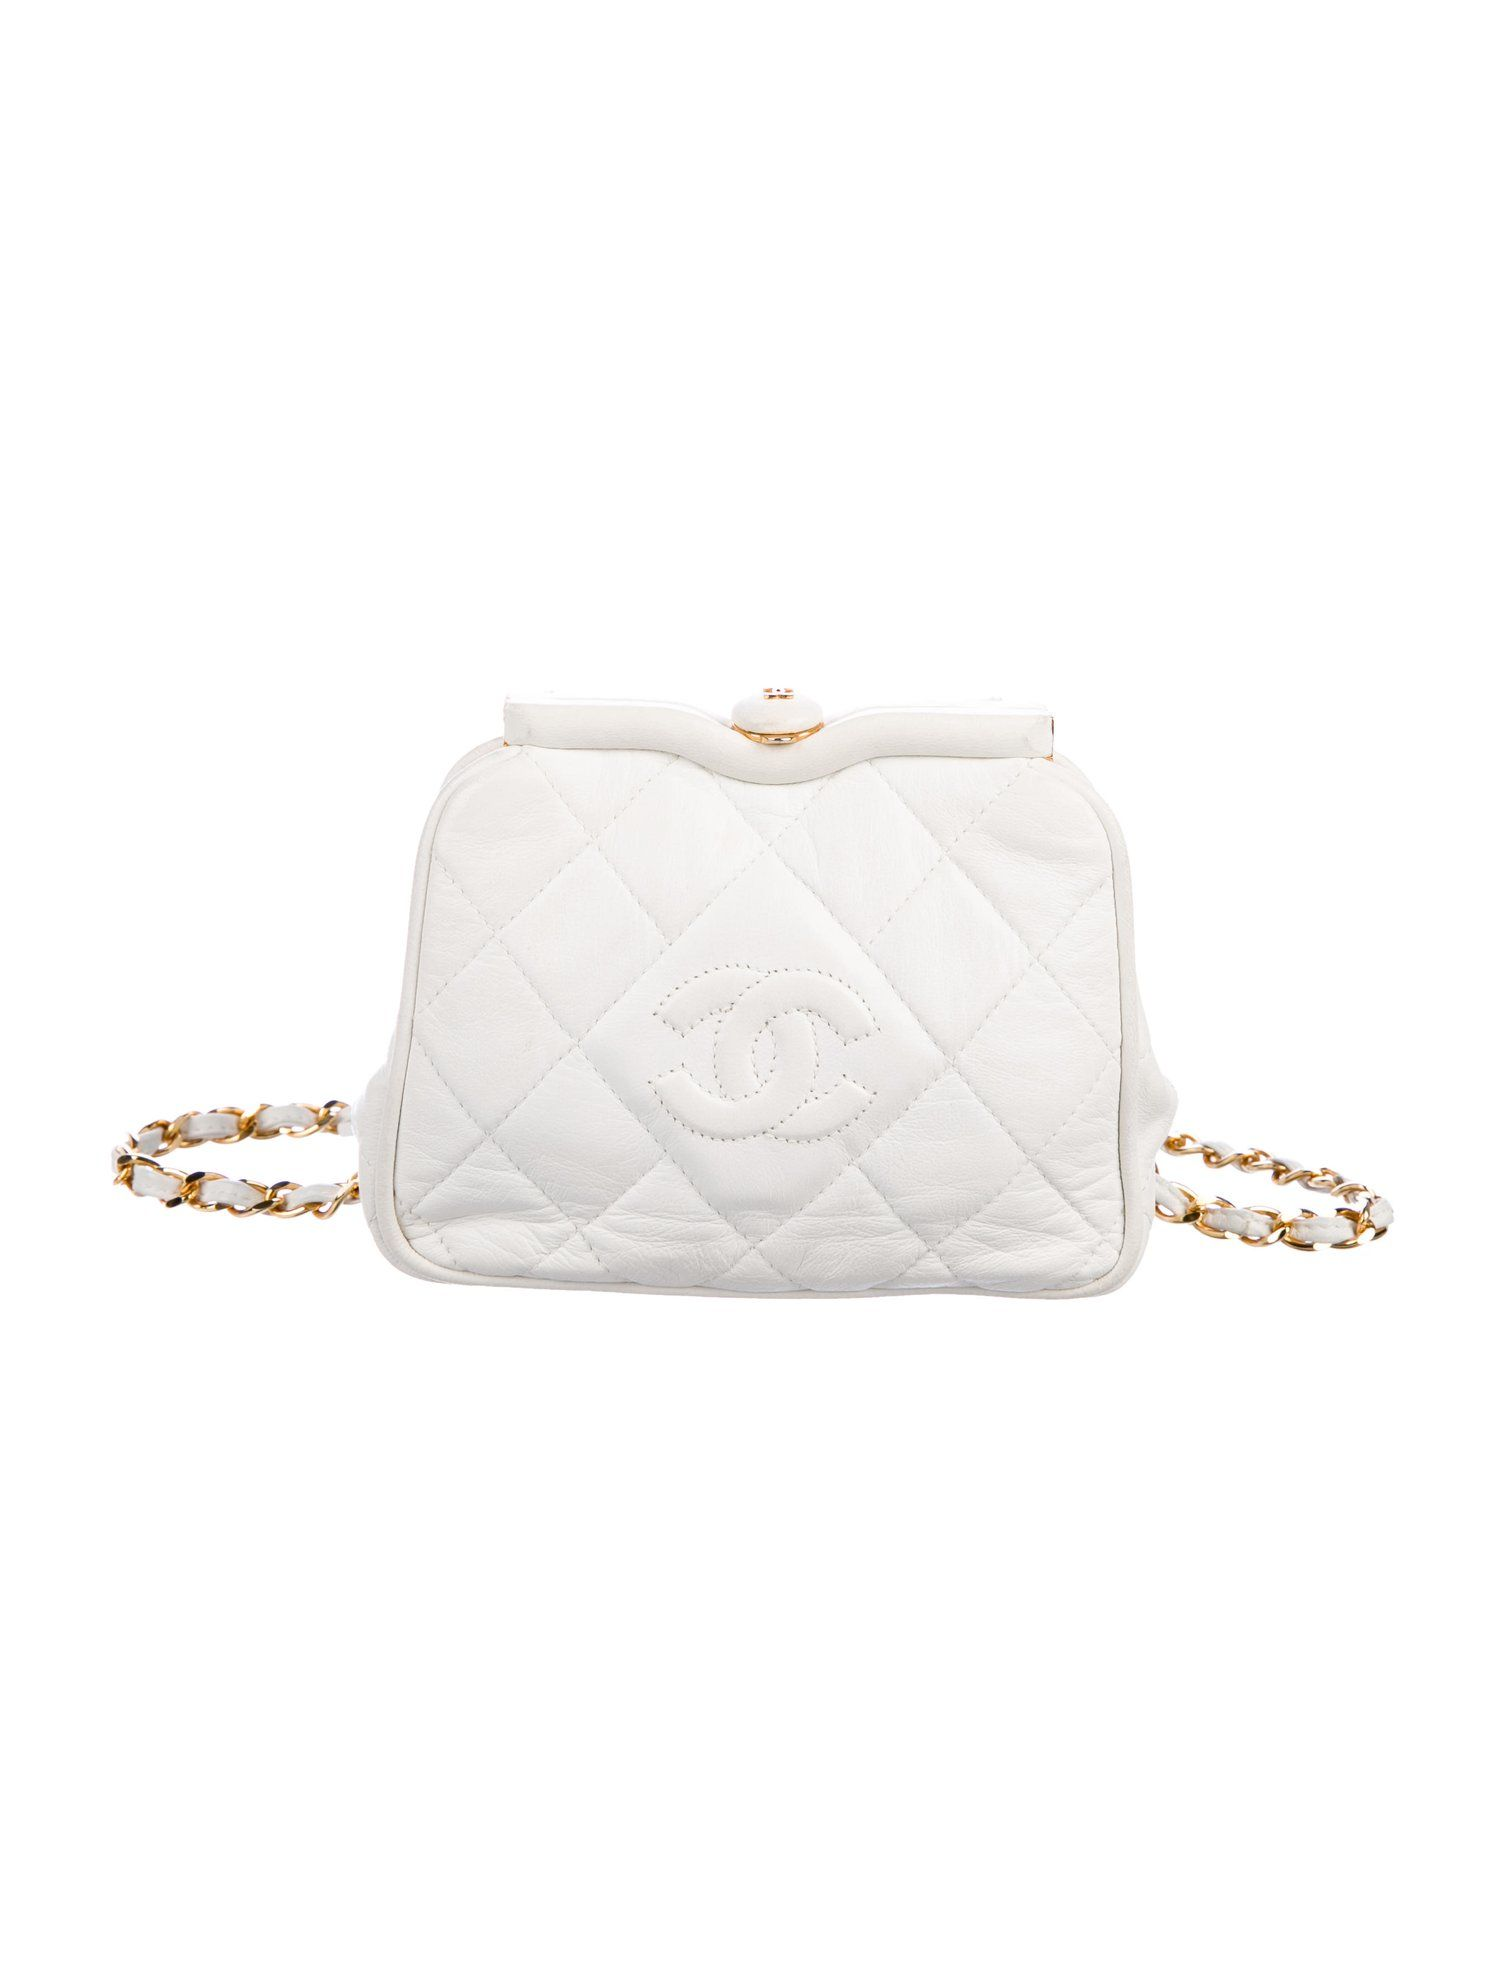 cdb9fa1f68b3 Chanel Vintage CC Tassel Waist Bag - Handbags - CHA274670 | The RealReal